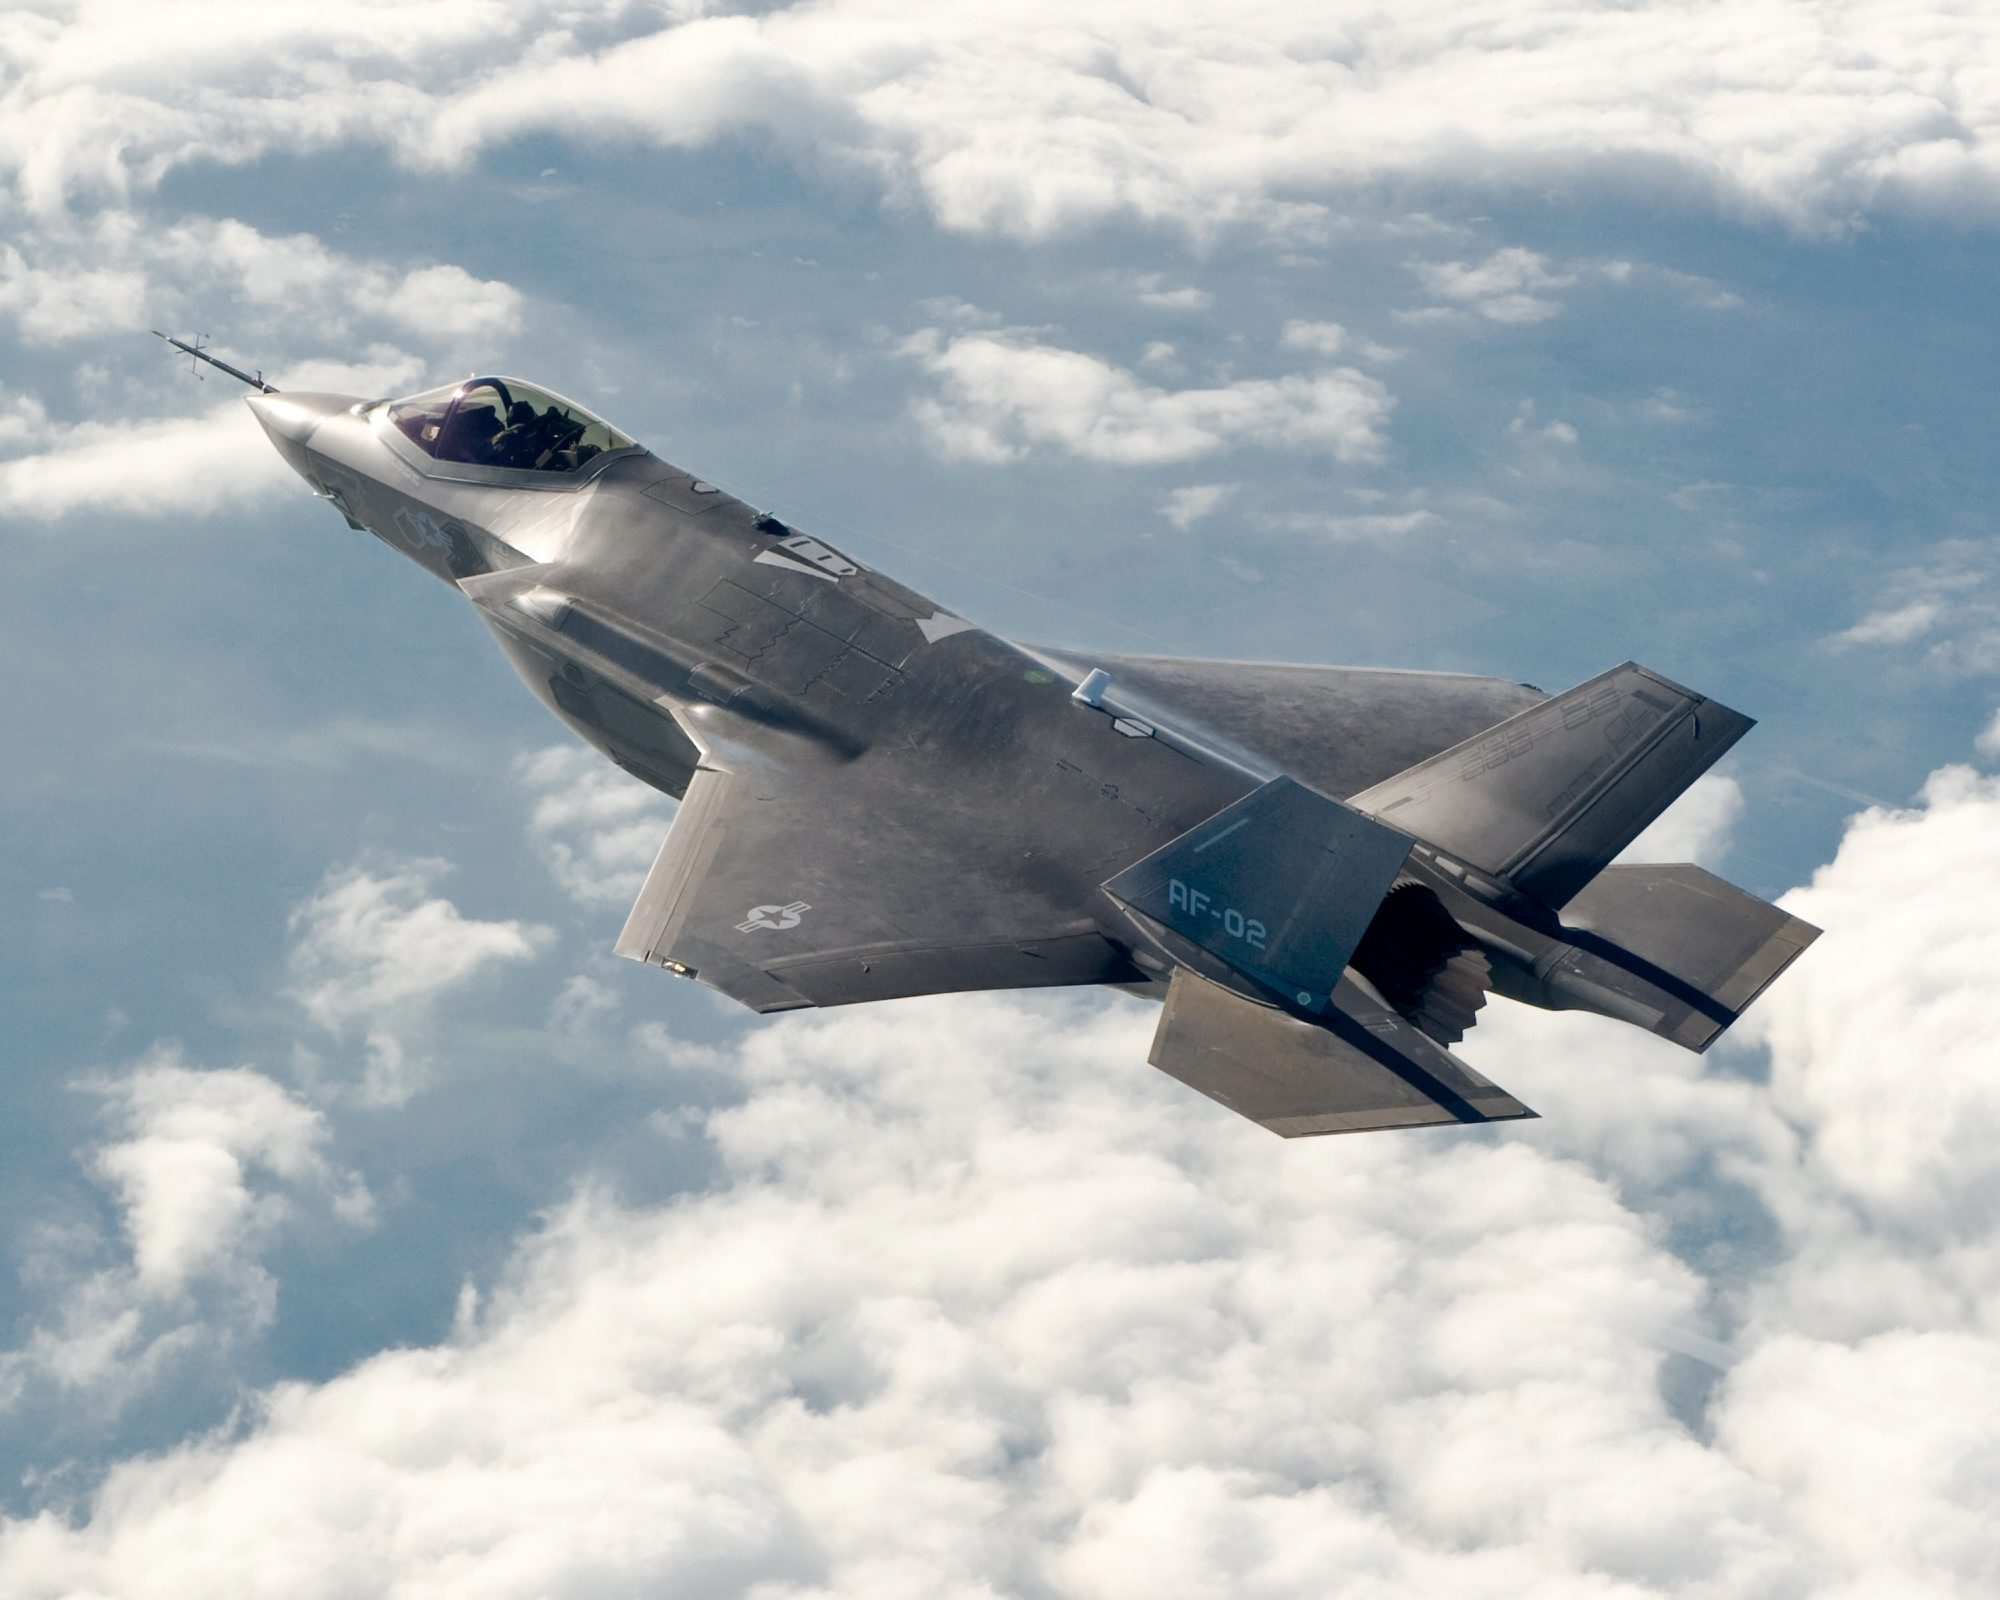 Lockheed Martin Corp. is the world's largest defense company.